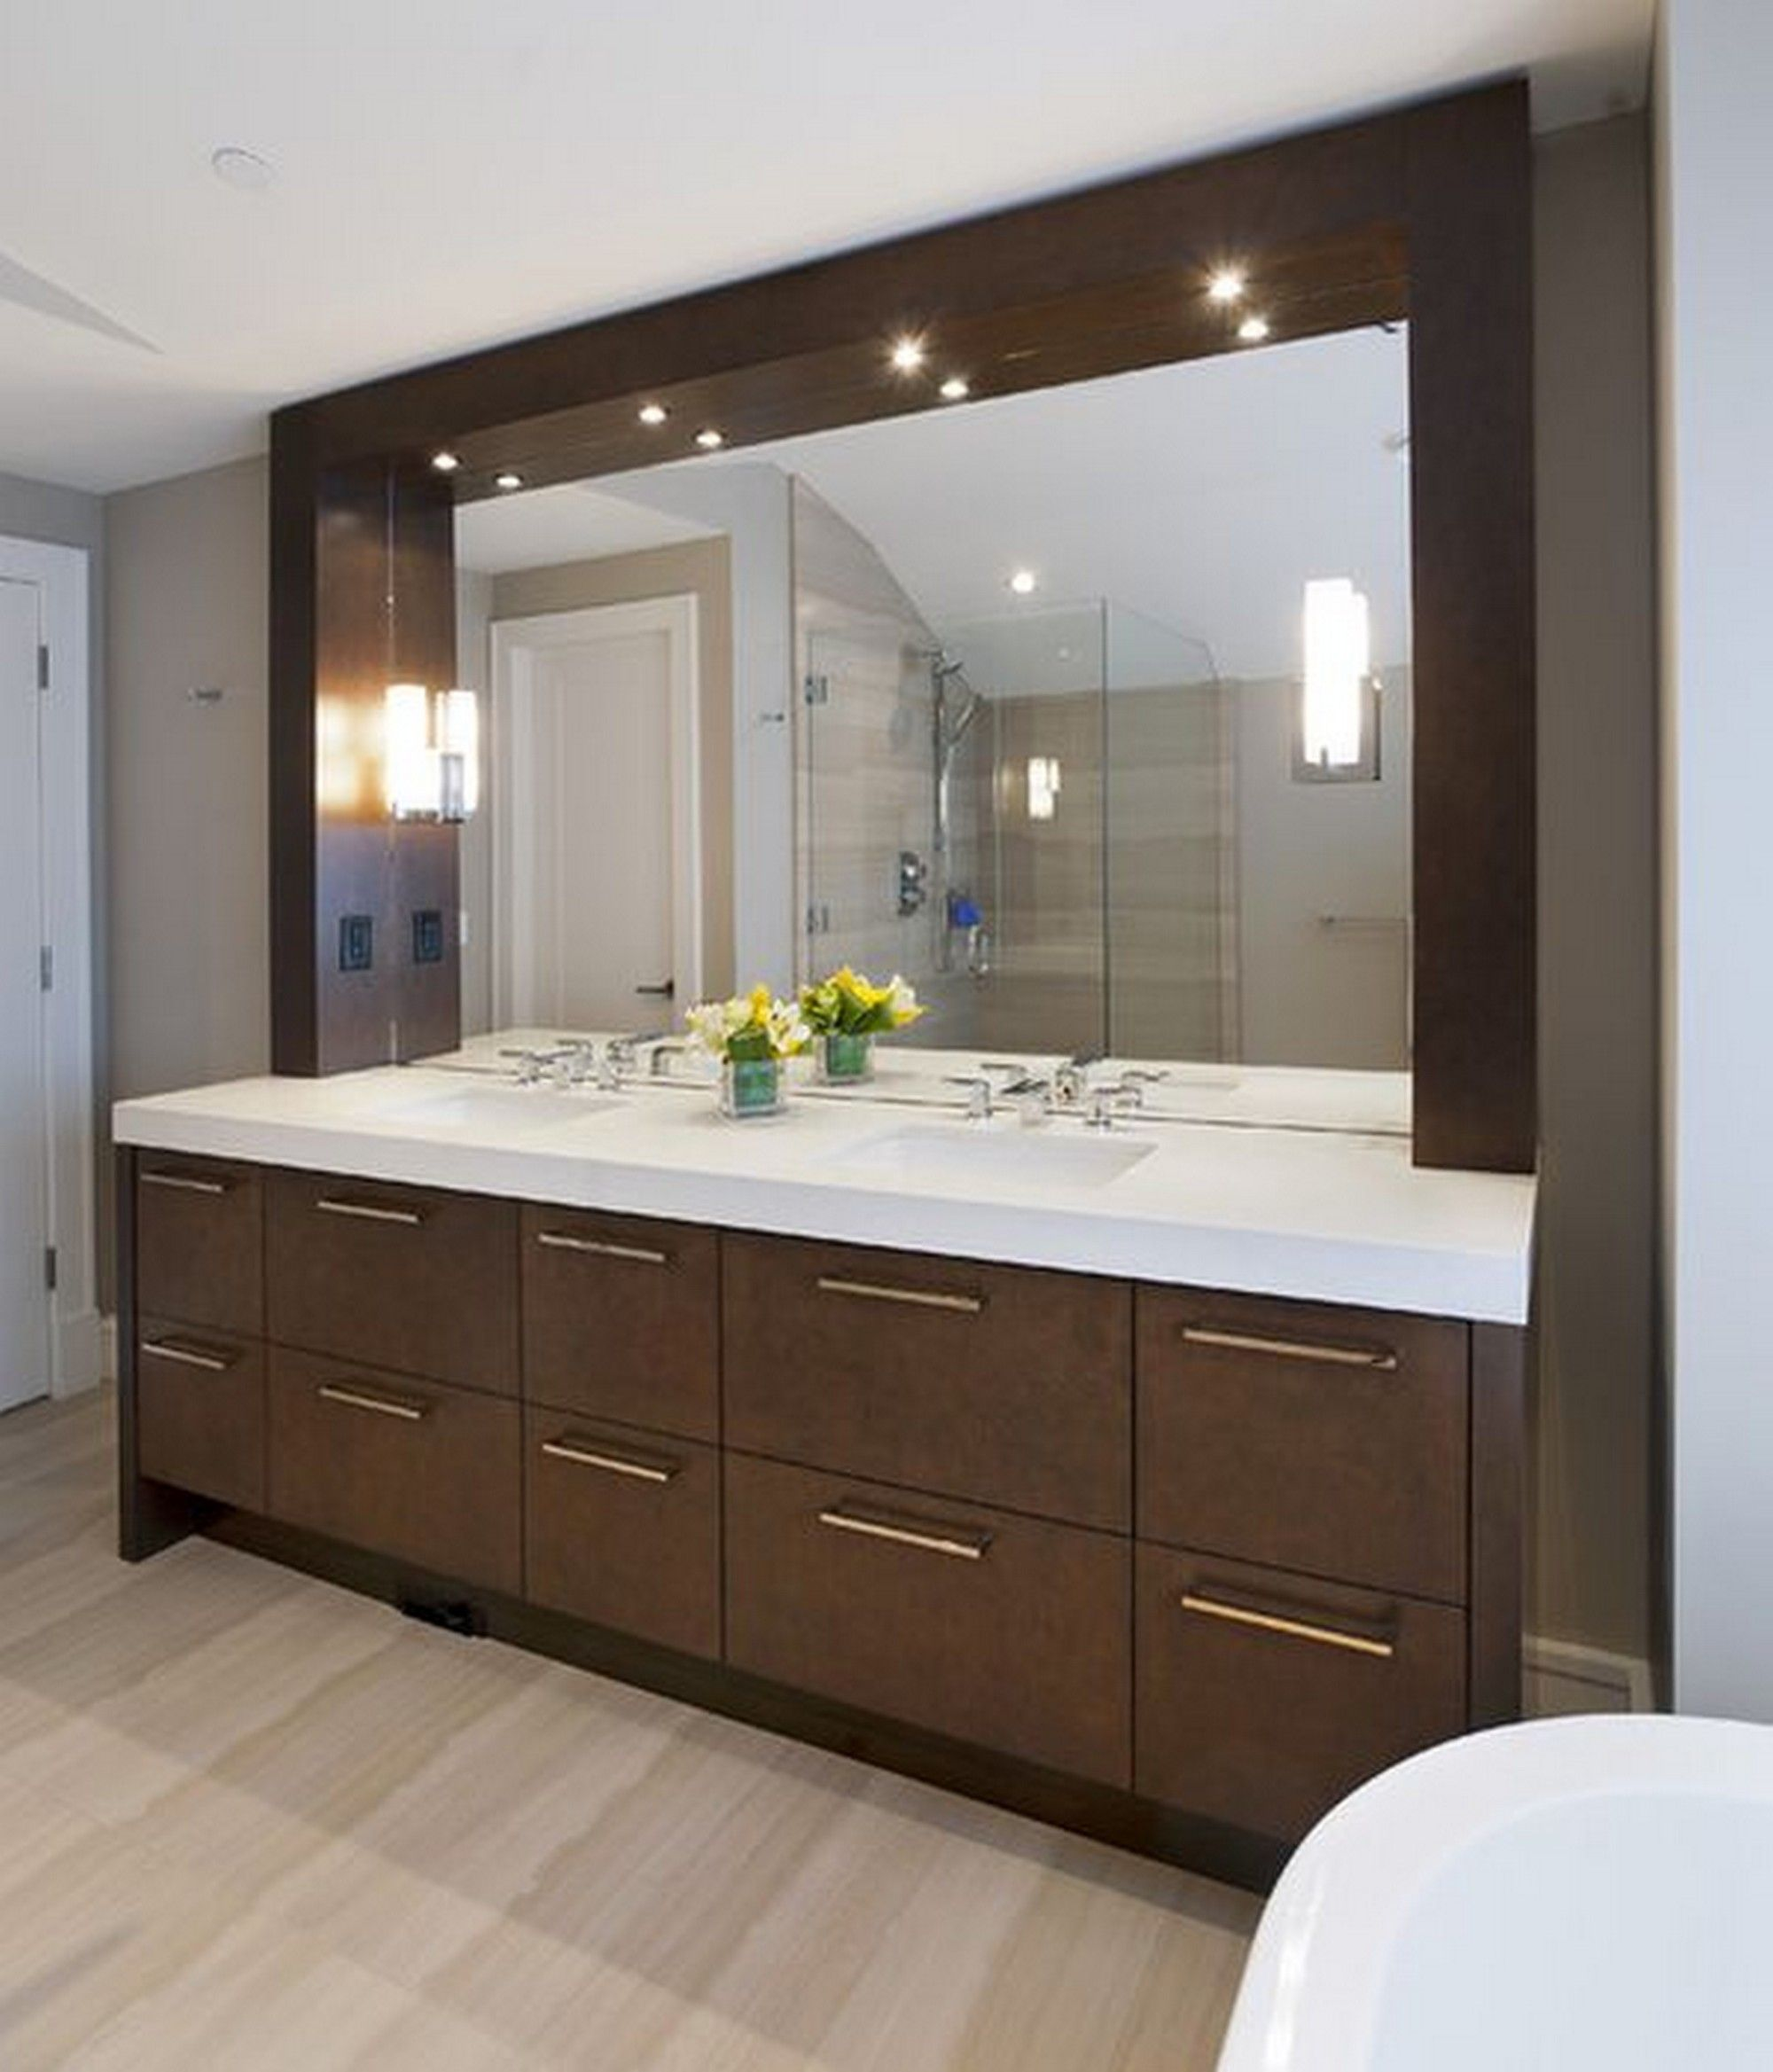 chrome canada bathroom ideas cabin pertaining air property rustic for vanity light your bronze mirrors modern shop amusing diys lights style lighting bel shades to